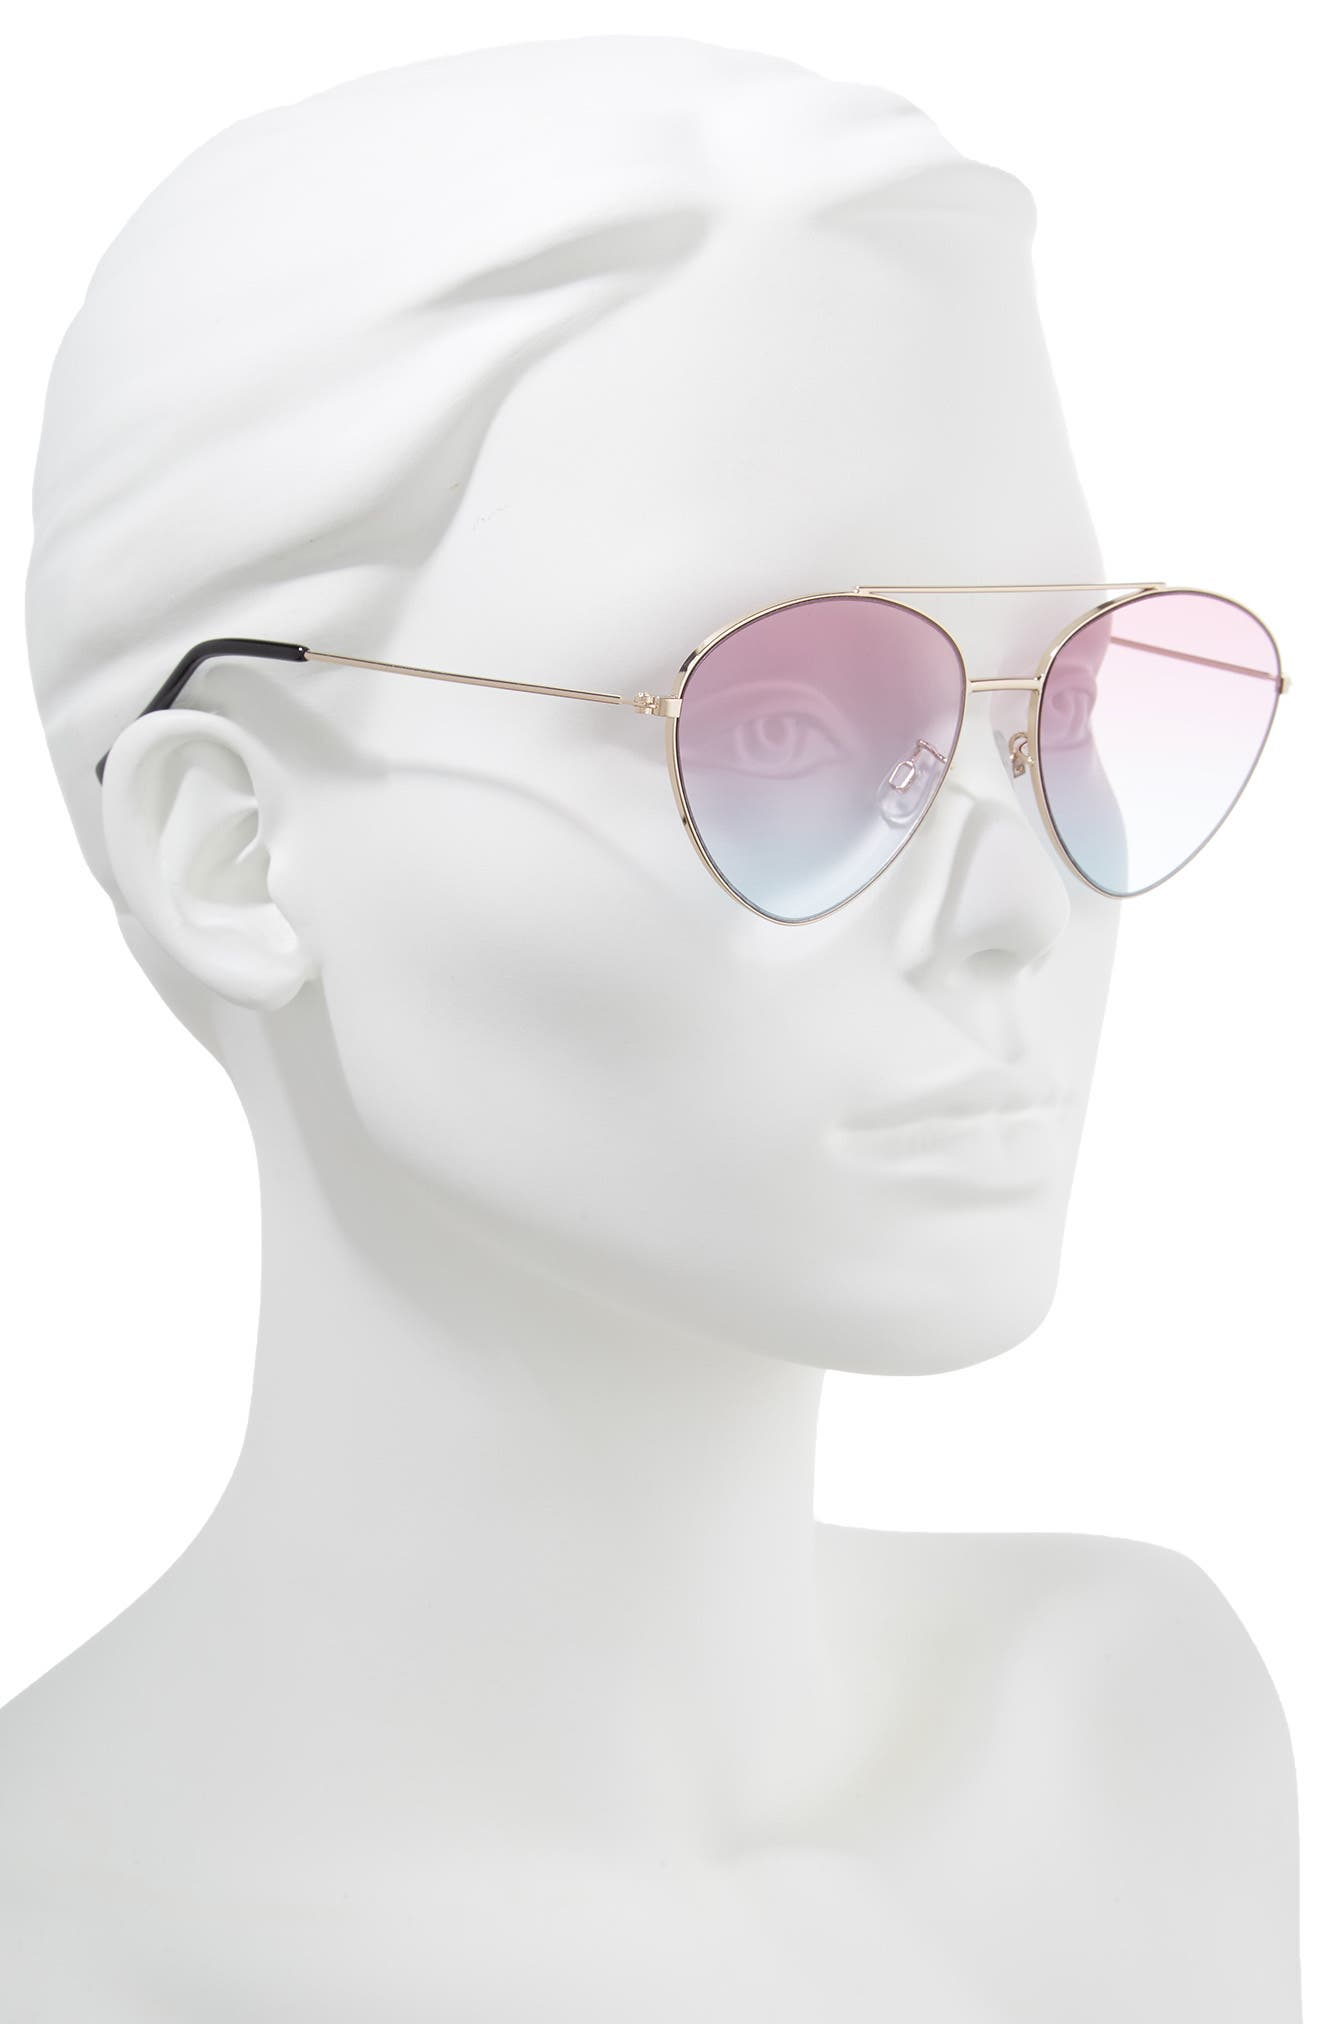 56mm Gradient Aviator Sunglasses,                             Alternate thumbnail 2, color,                             710